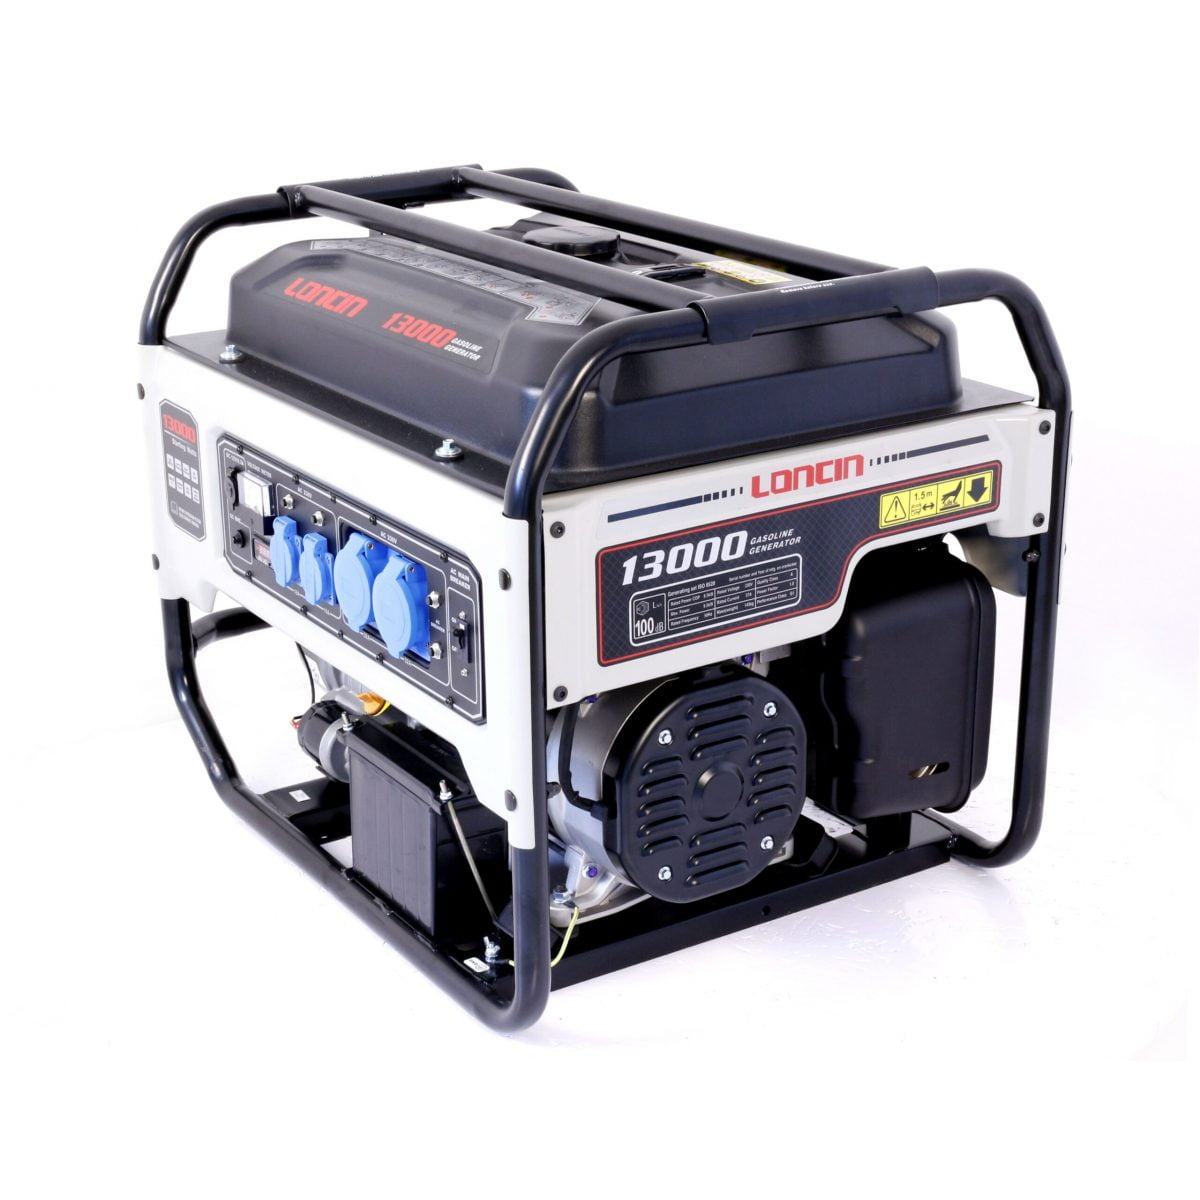 generator loncin 13000 o mac.ro 3 scaled